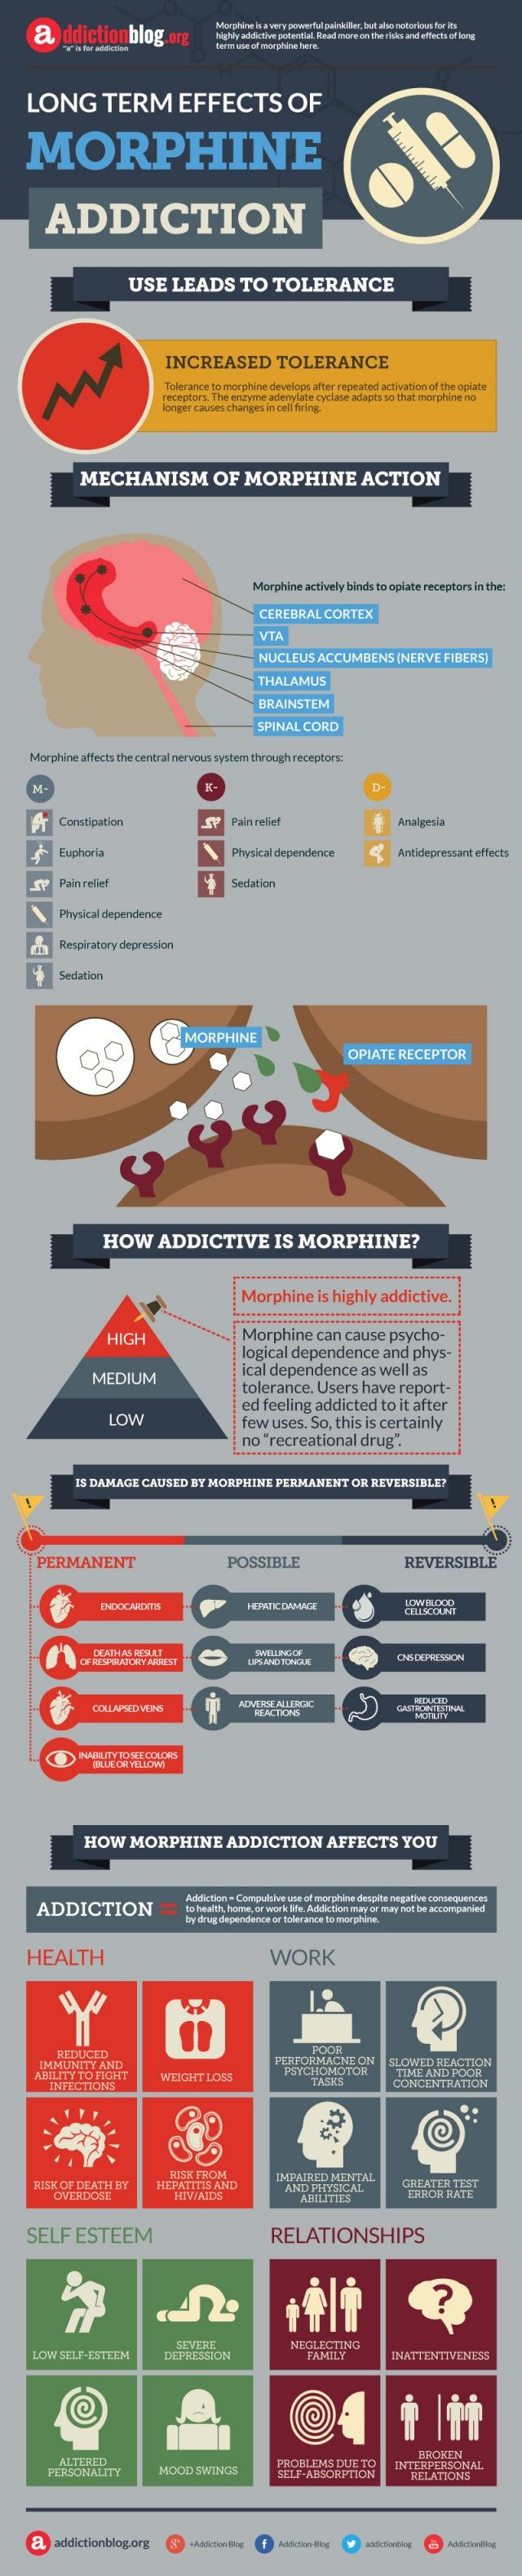 """Effects of morphine abuse and addiction. It is a highly addictive substance. It can cause psychological dependence and physical dependence as well as tolerance. Morphine also produces euphoria and other positive effects, which compel users to continue. Users have reported feeling addicted to it after few uses. So, this is certainly no """"recreational drug"""""""